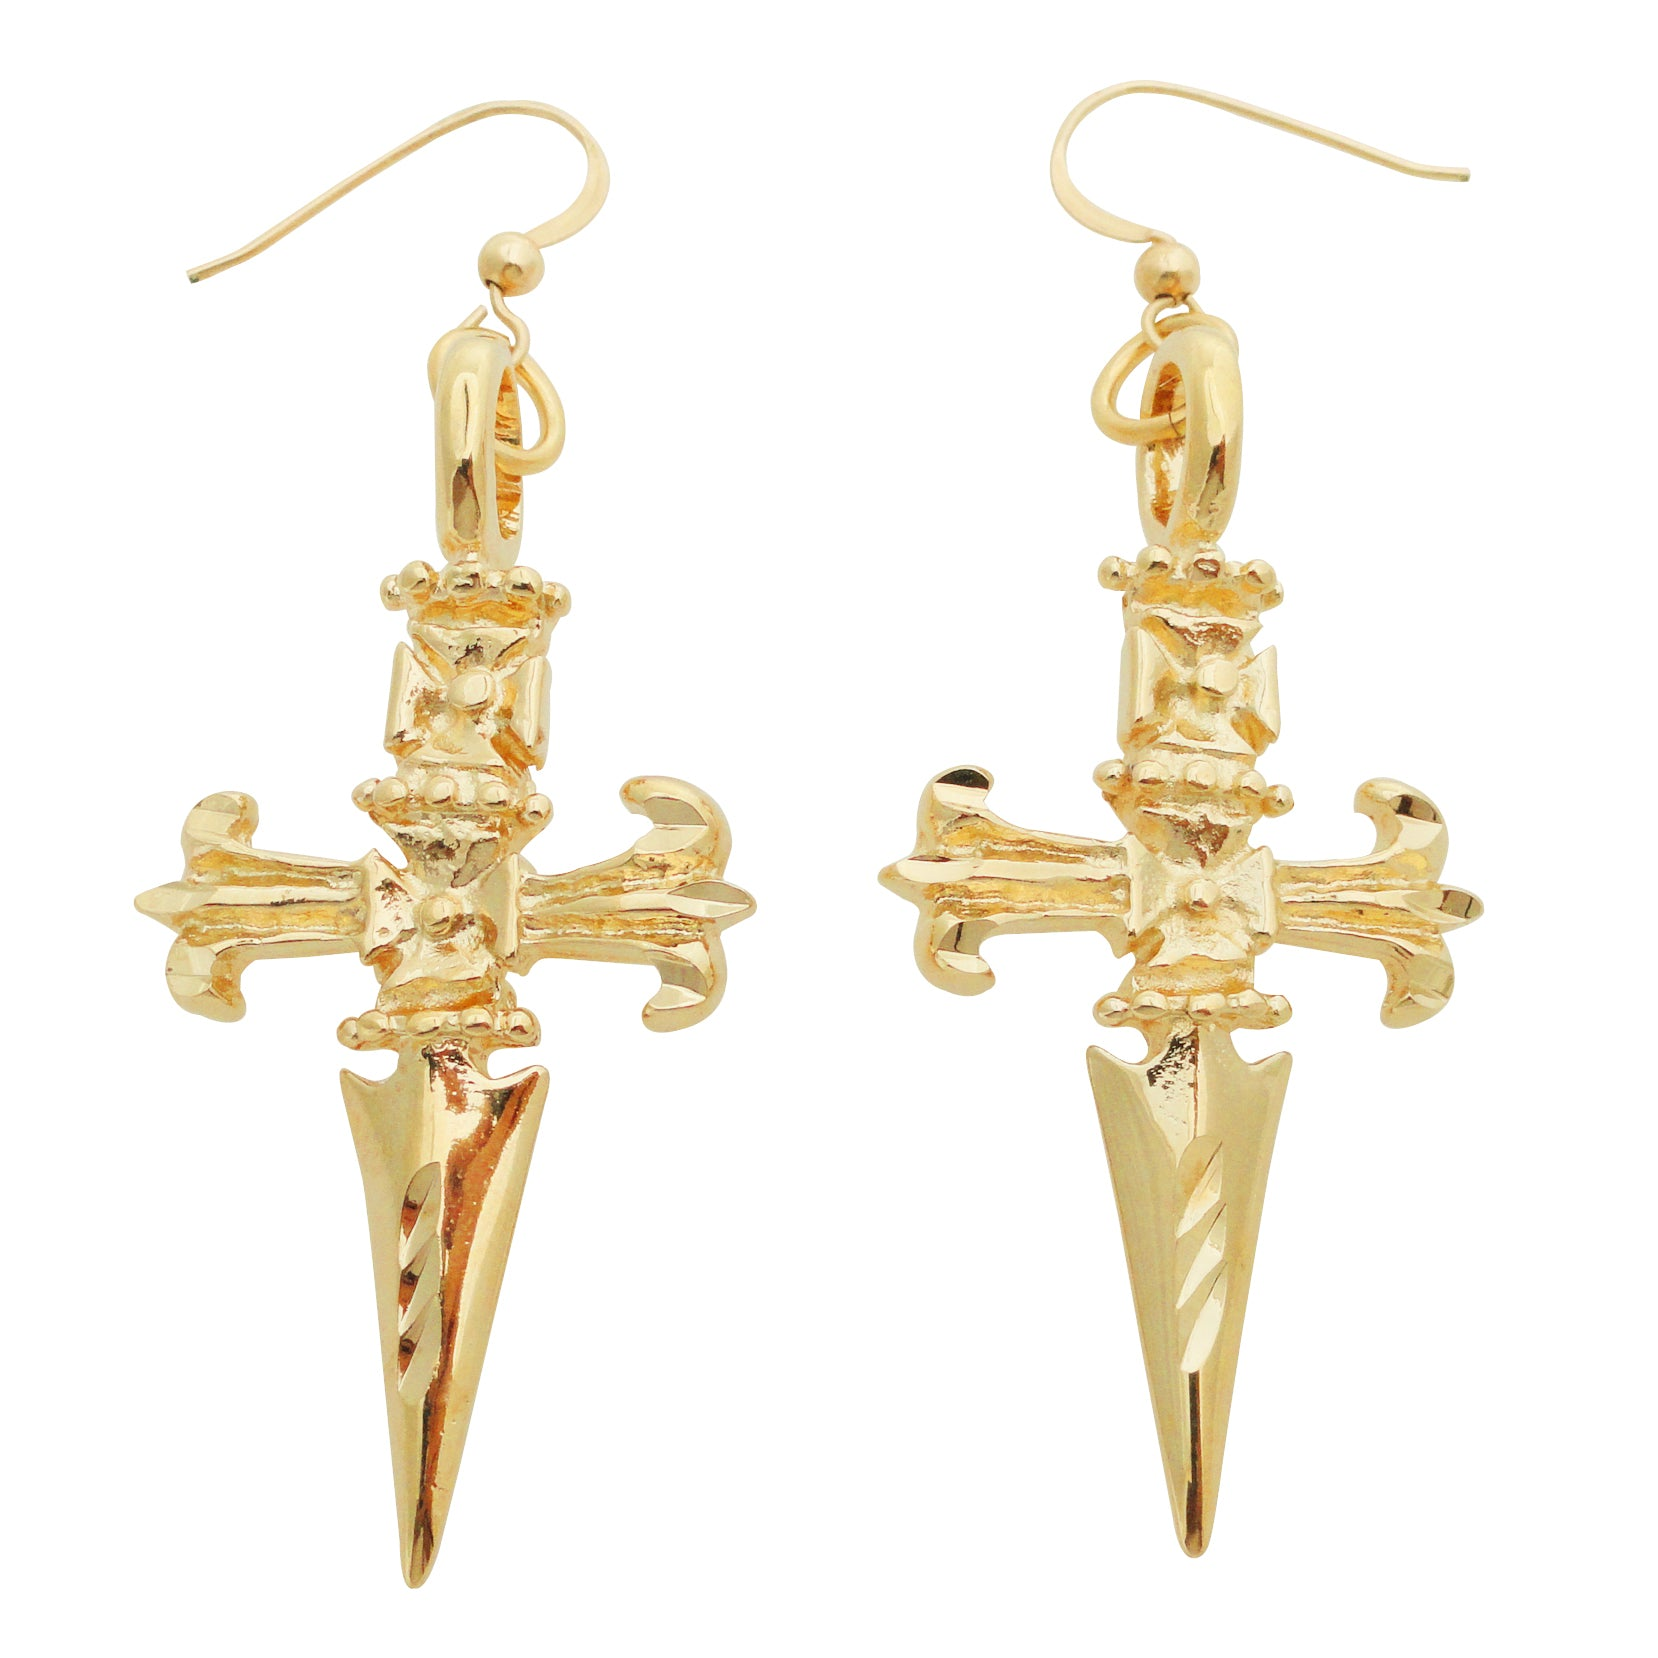 24kt gold plated dagger earrings by Jenny Dayco